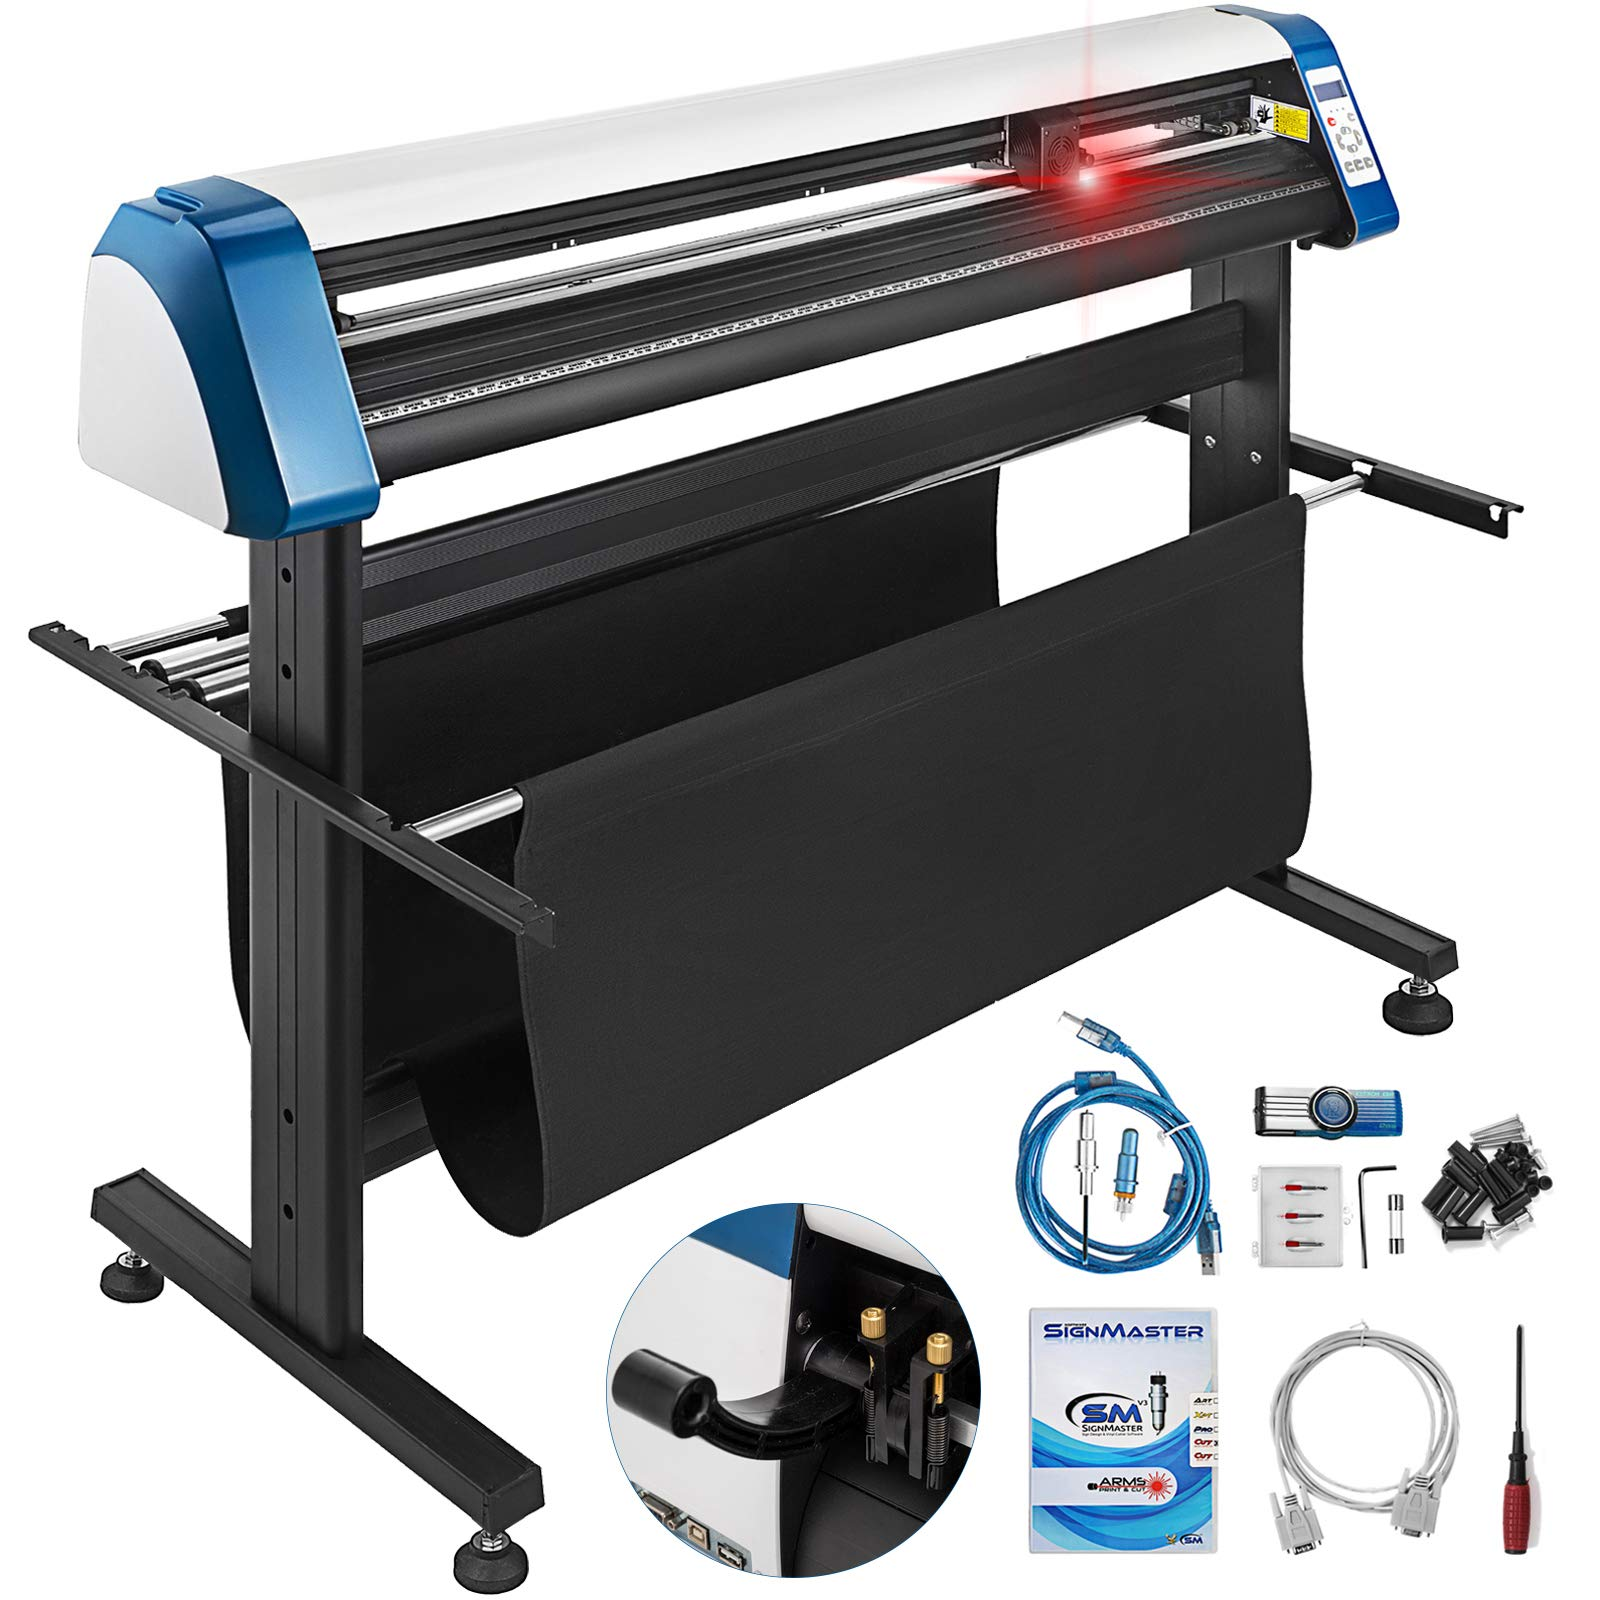 VEVOR Vinyl Cutter 53 Inch Plotter Machine Automatic Paper Feed Vinyl Cutter Plotter Speed Adjustable Sign Cutting with Floor Stand Signmaster Software by VEVOR